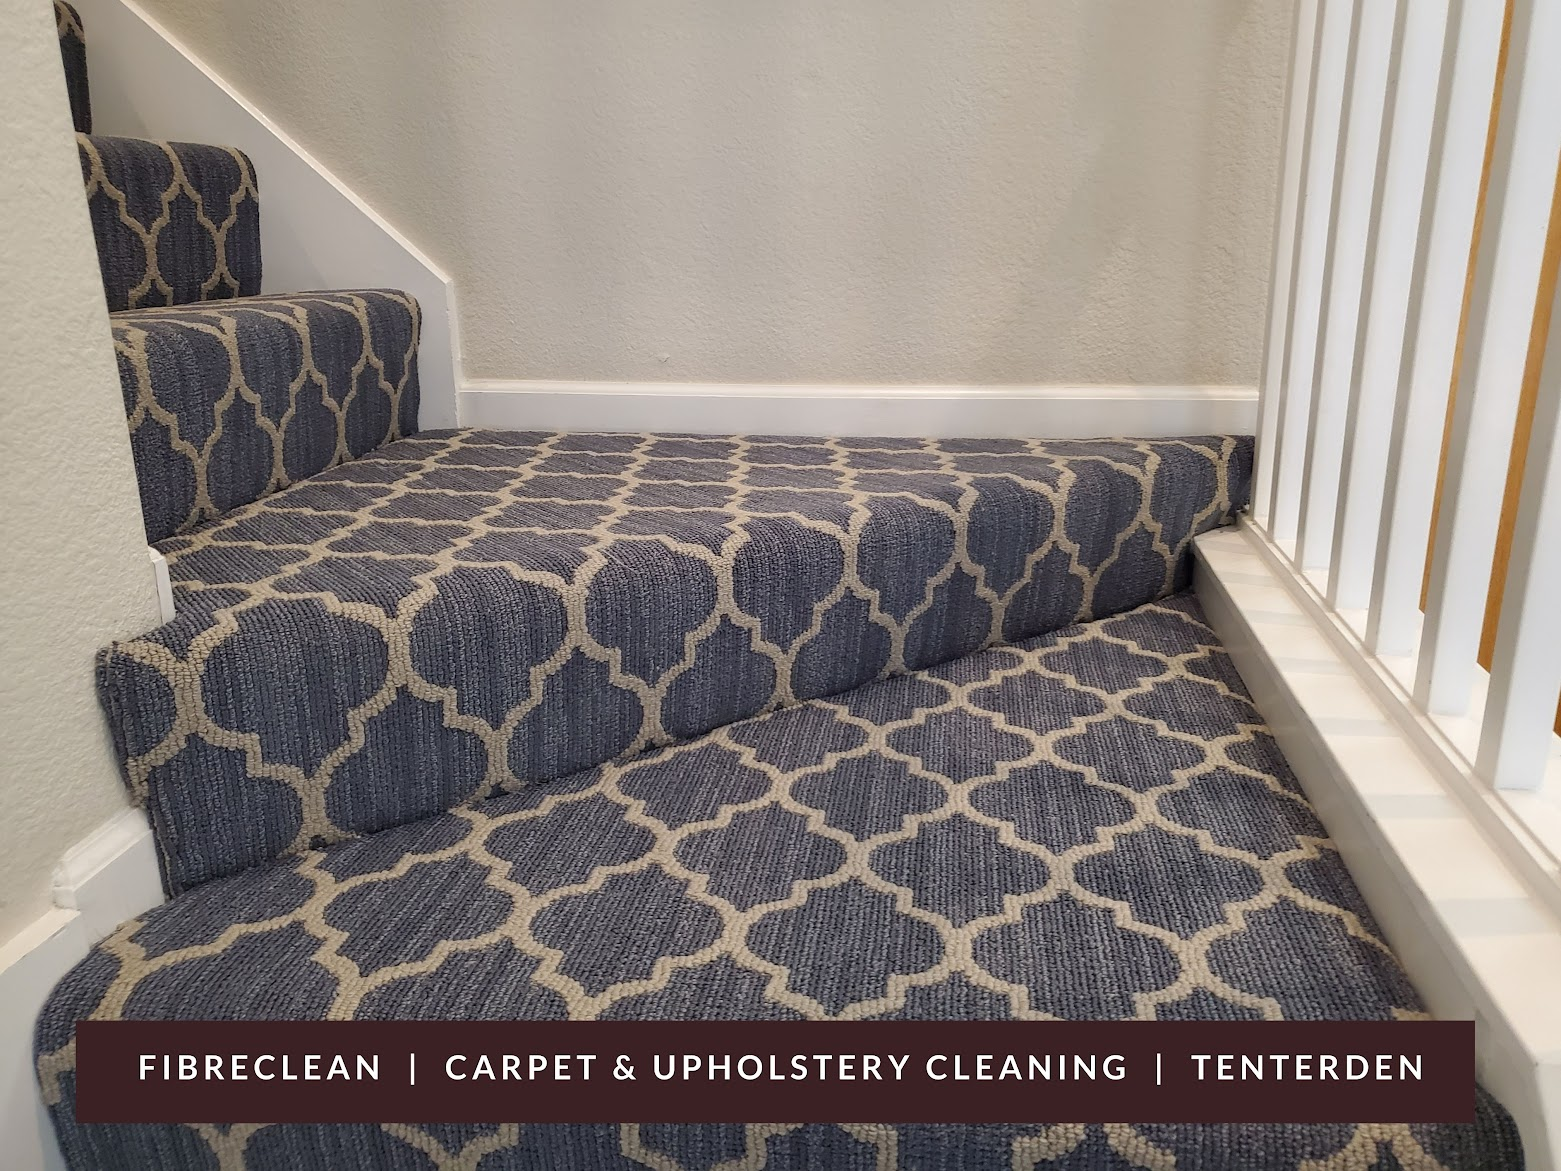 Fibre Clean Carpet and Upholstery Cleaning Tenterden